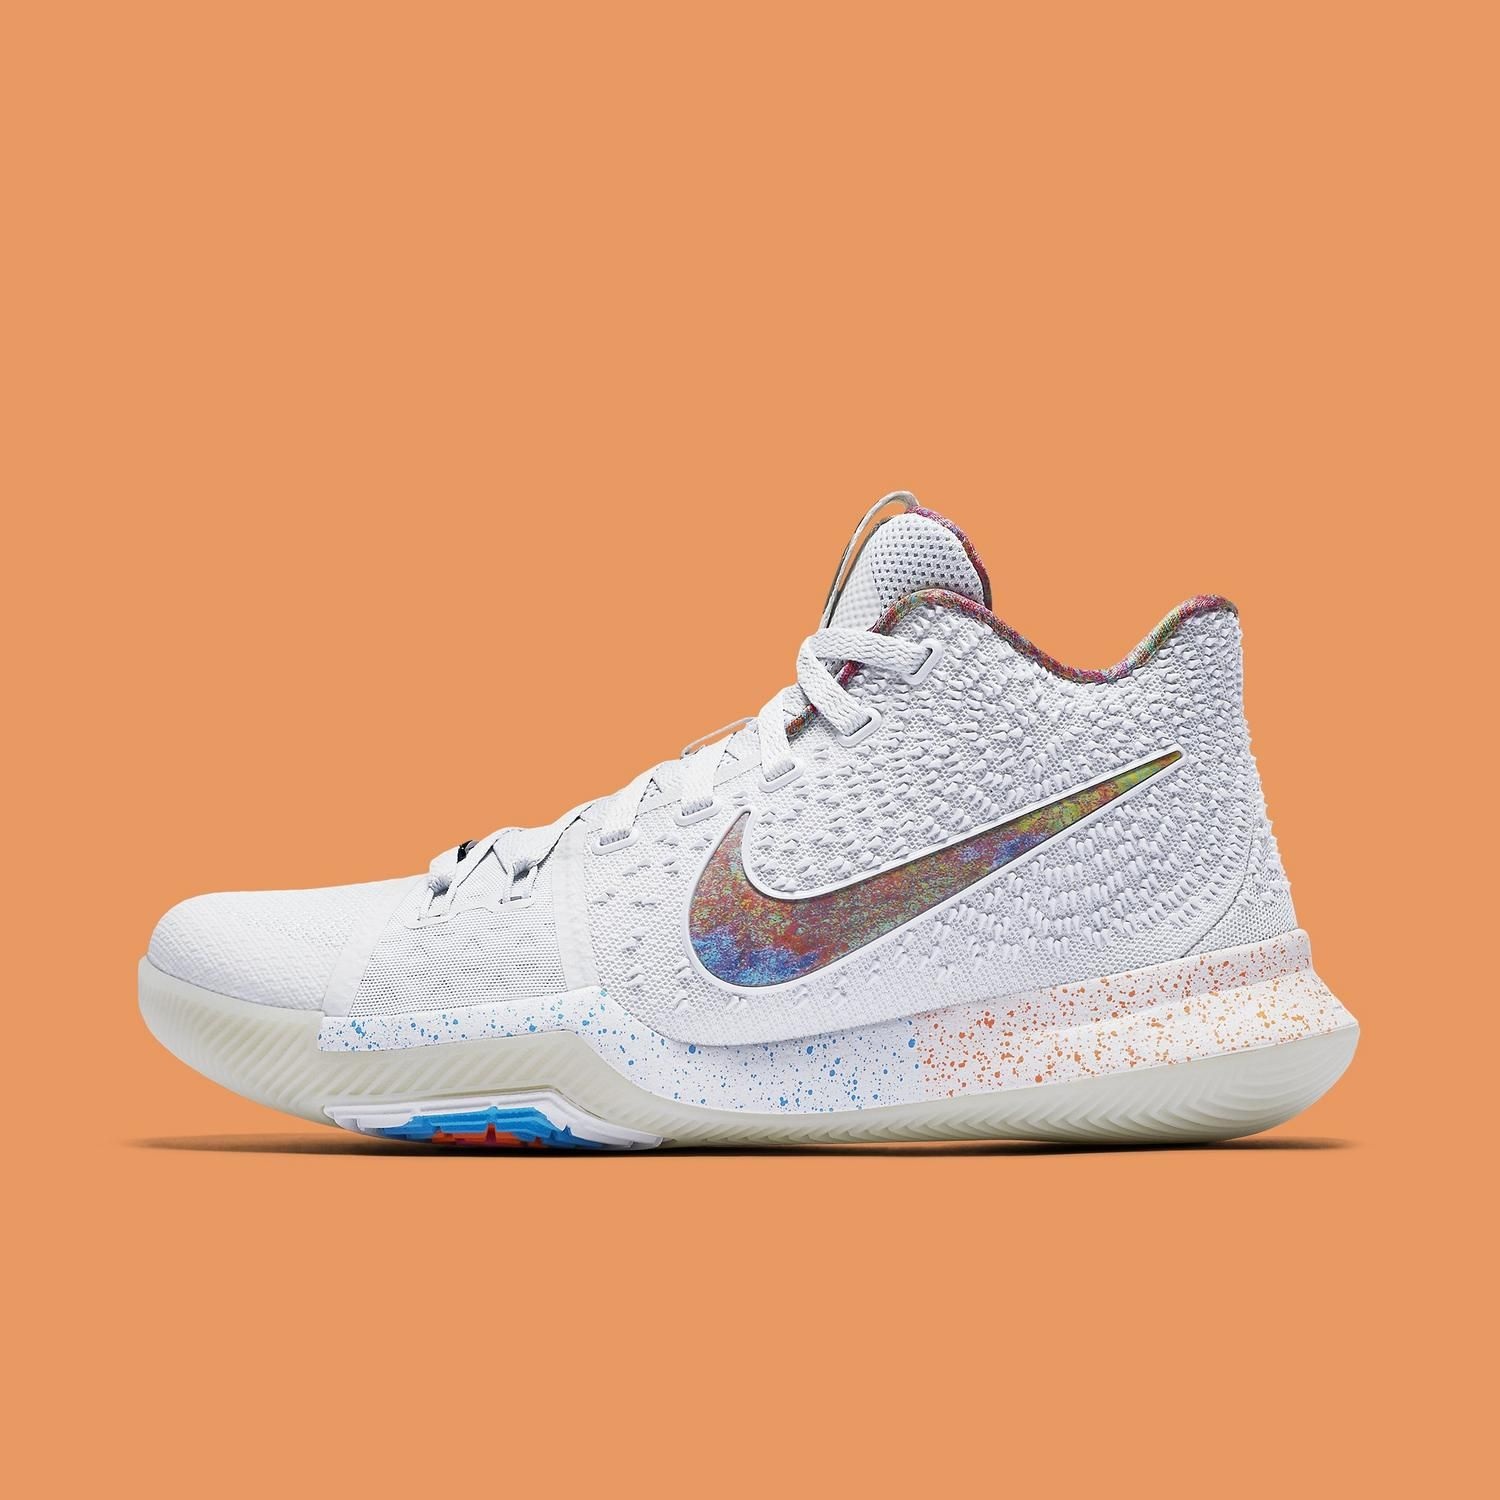 1621140ba4de2 Nike just released images of their new EYBL Kyrie 3s and PG1s